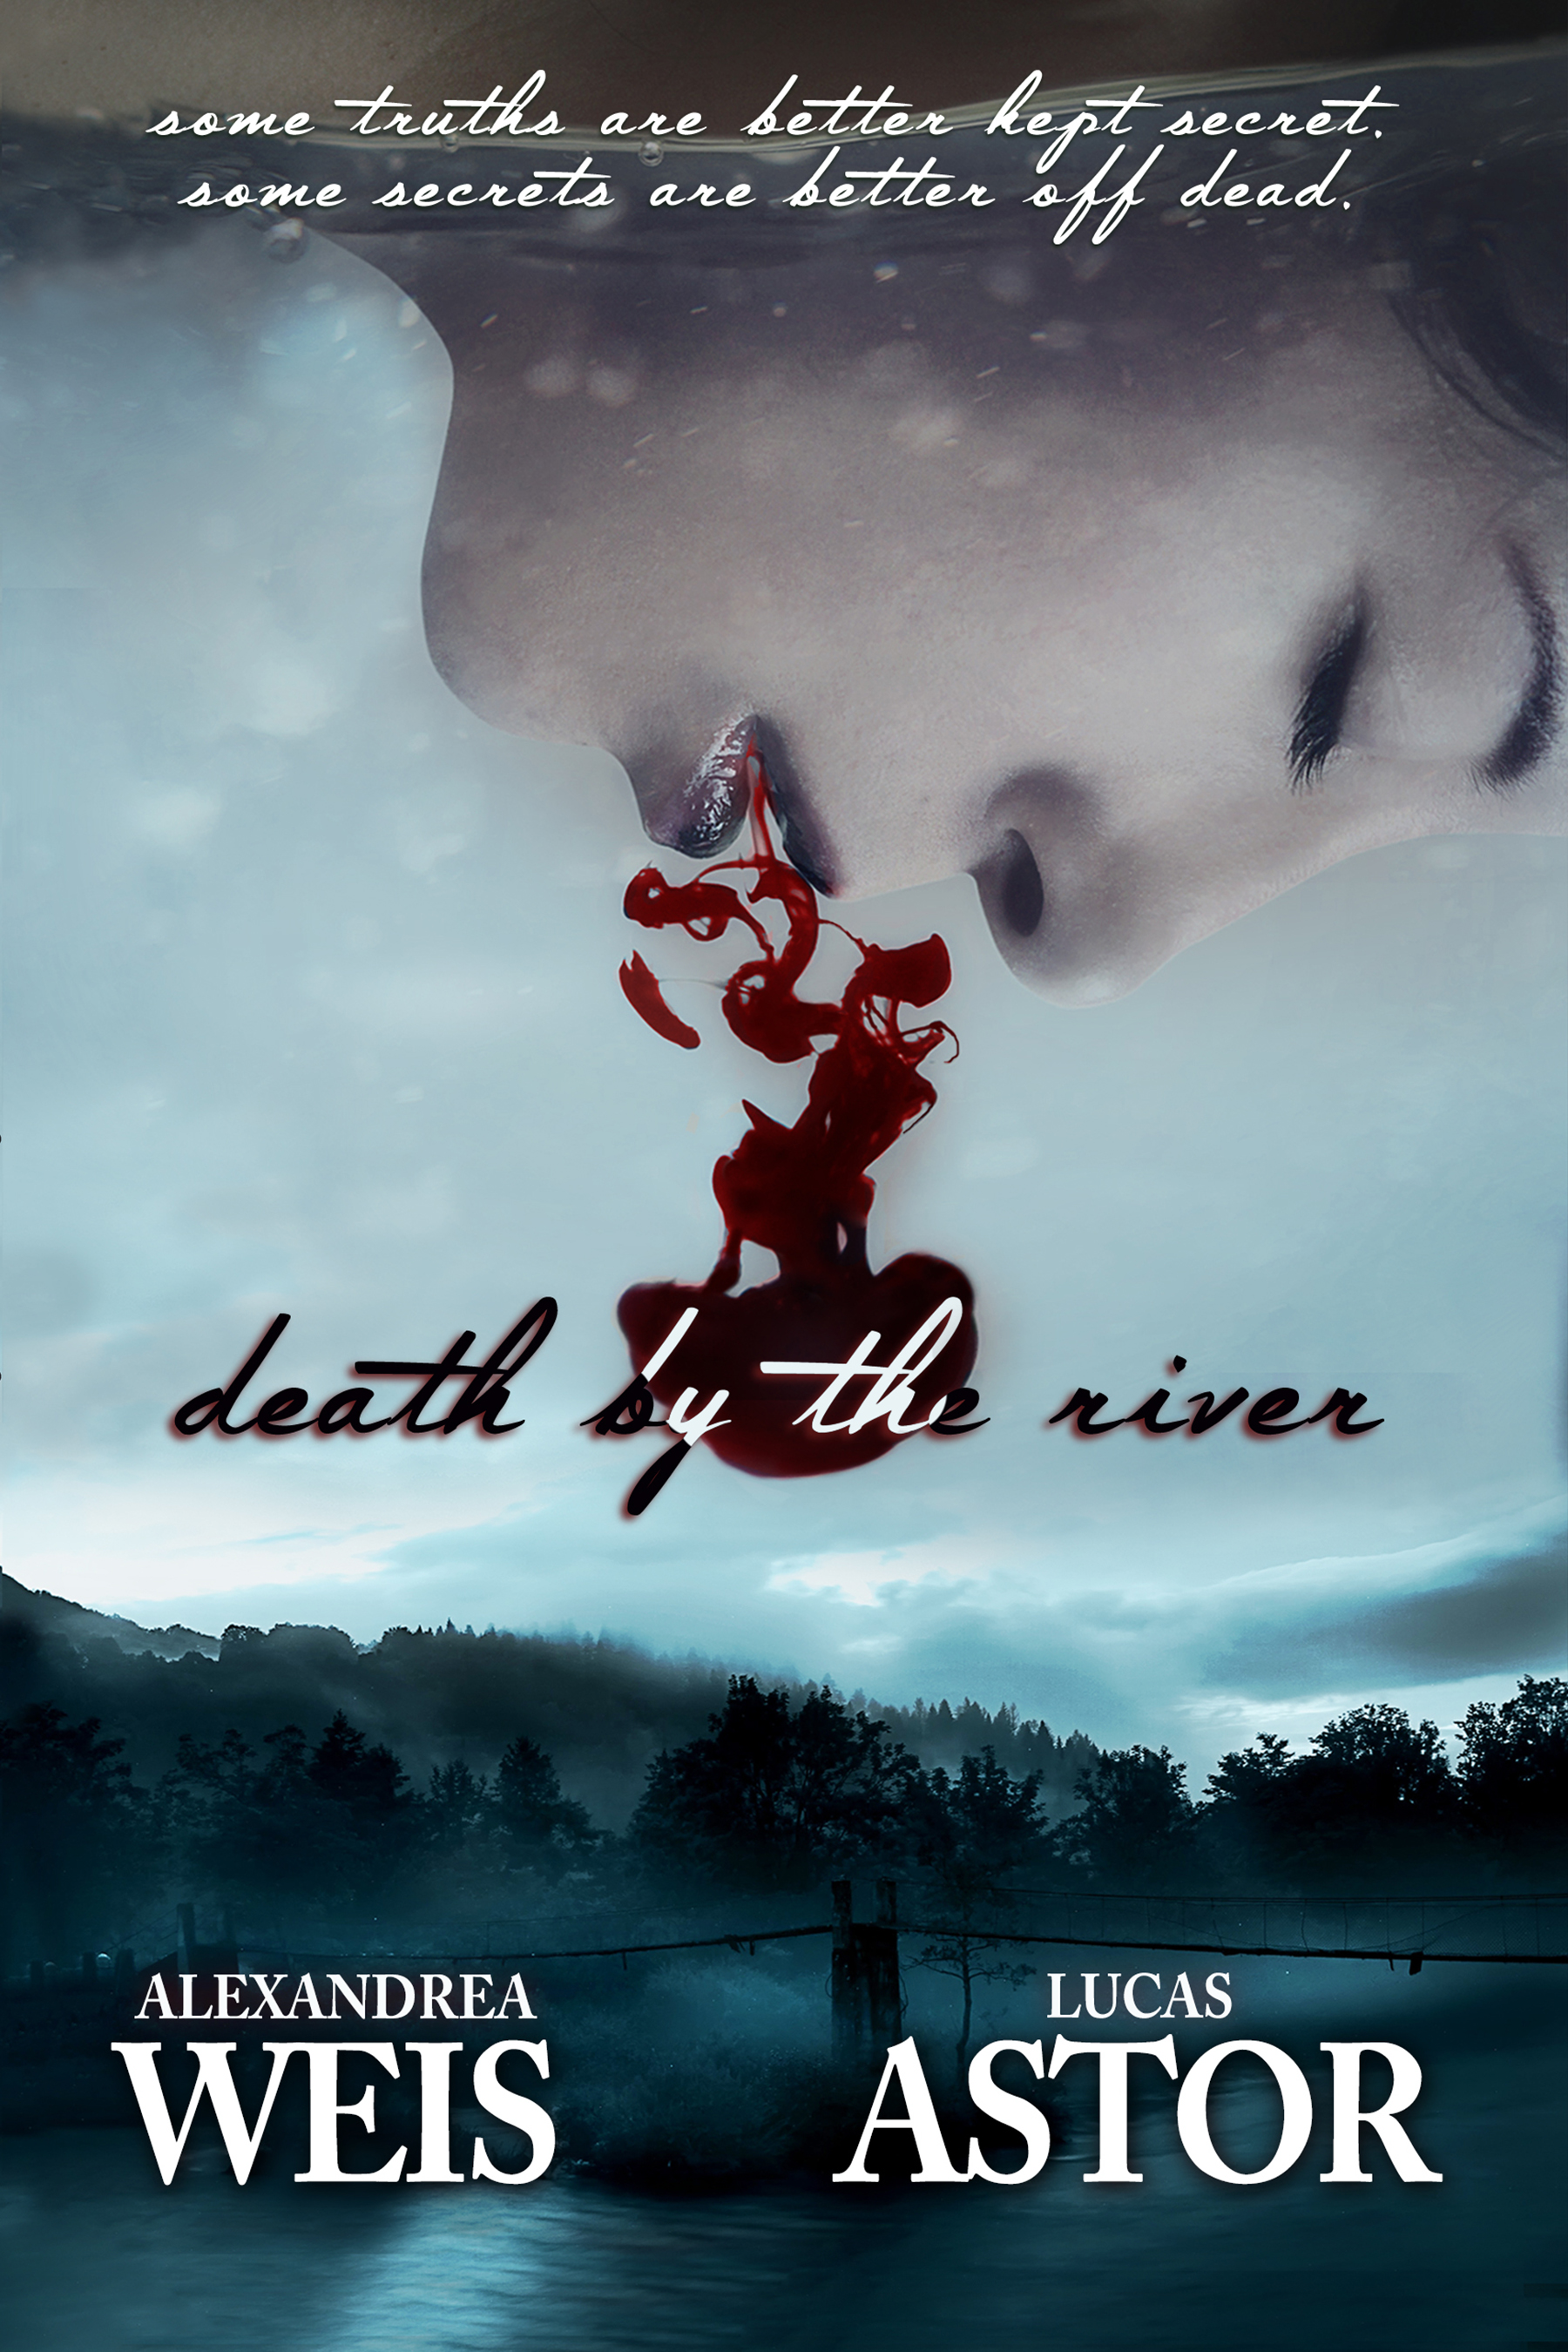 #BookReview and #Excerpt of Death by the River by Alexandrea Weis and Lucas Astor @alexandreaweis @CherylMash @partnersincr1me